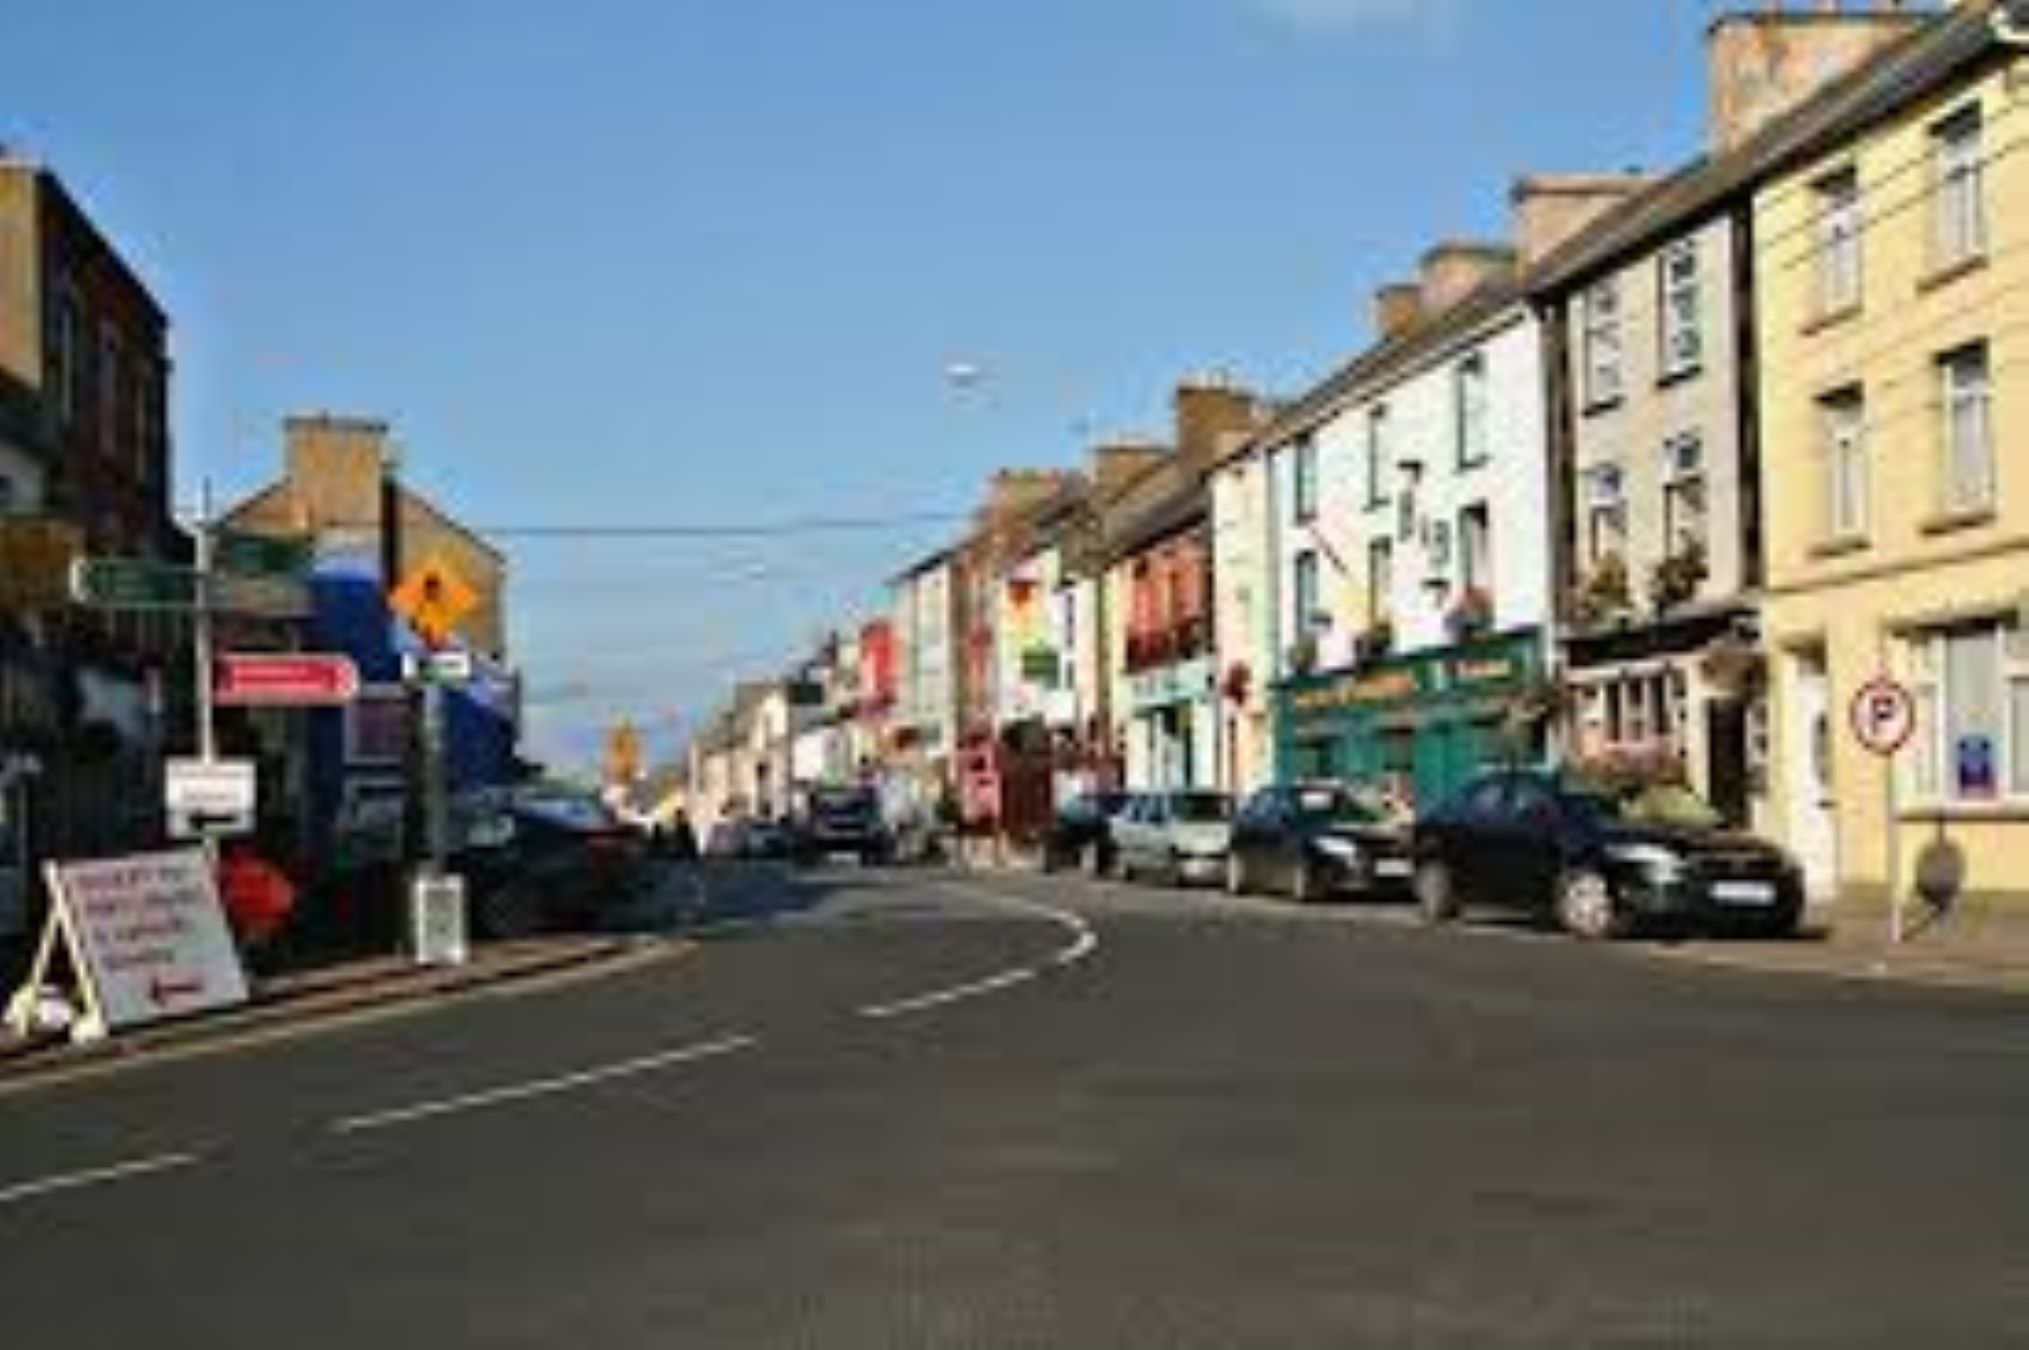 The 10 best hotels & places to stay in Lisdoonvarna, Ireland